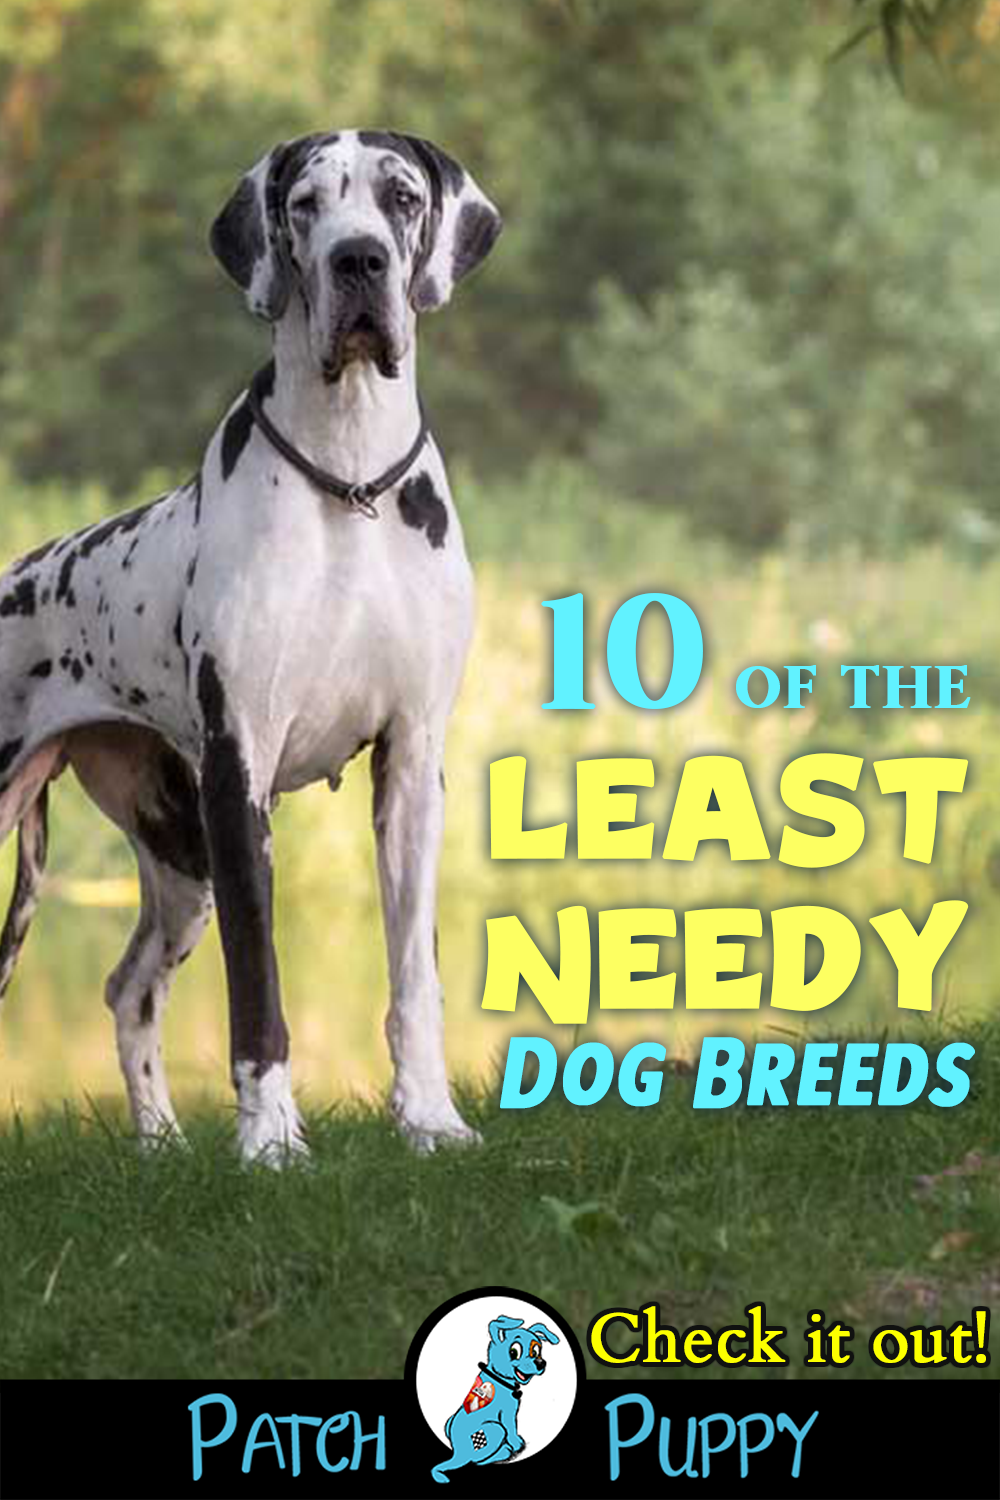 10 Of The Least Needy Dog Breeds You Ll Be Surprised Patchpuppy Com Dog Breeds Dogs Breeds